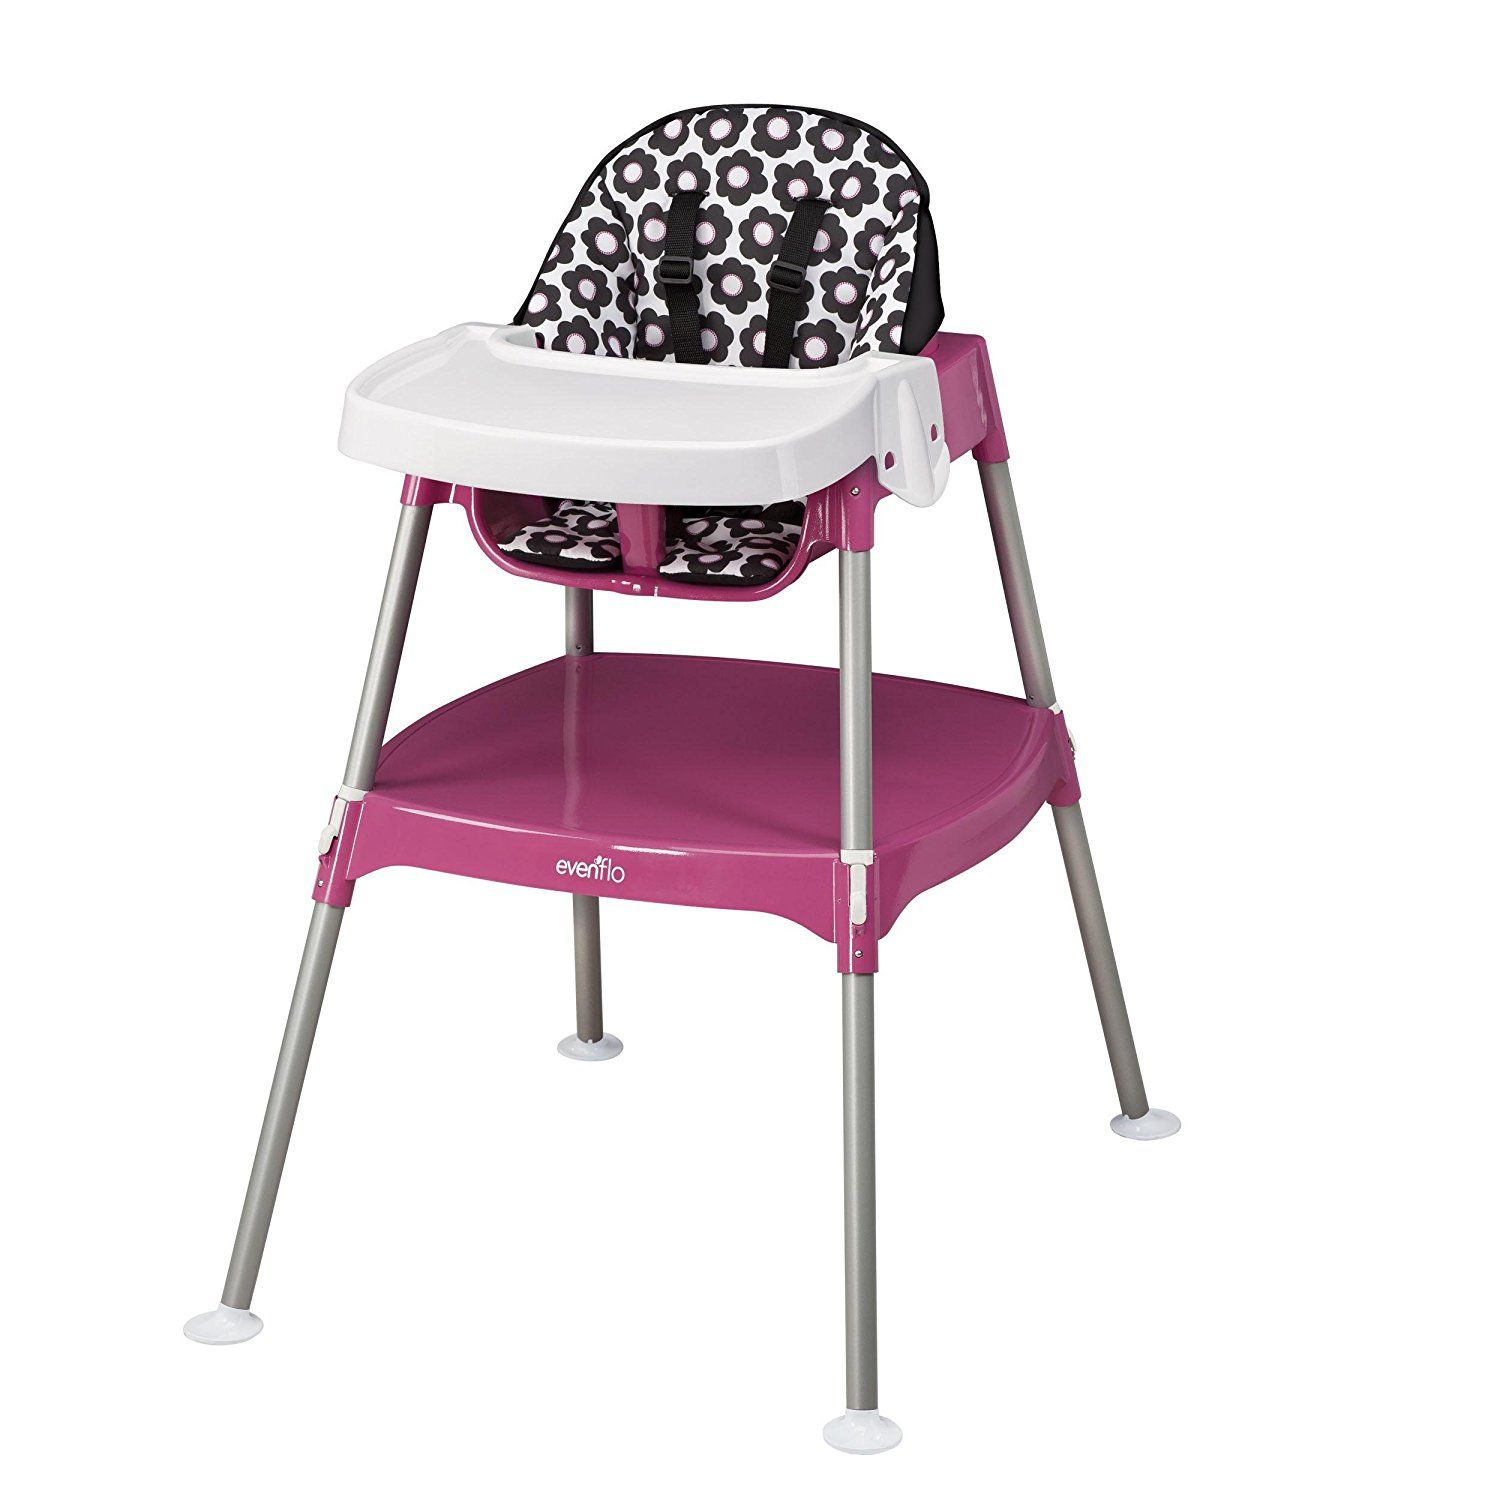 100 Fisher Price Convertible High Chair Kitchen Remodel Ideas for